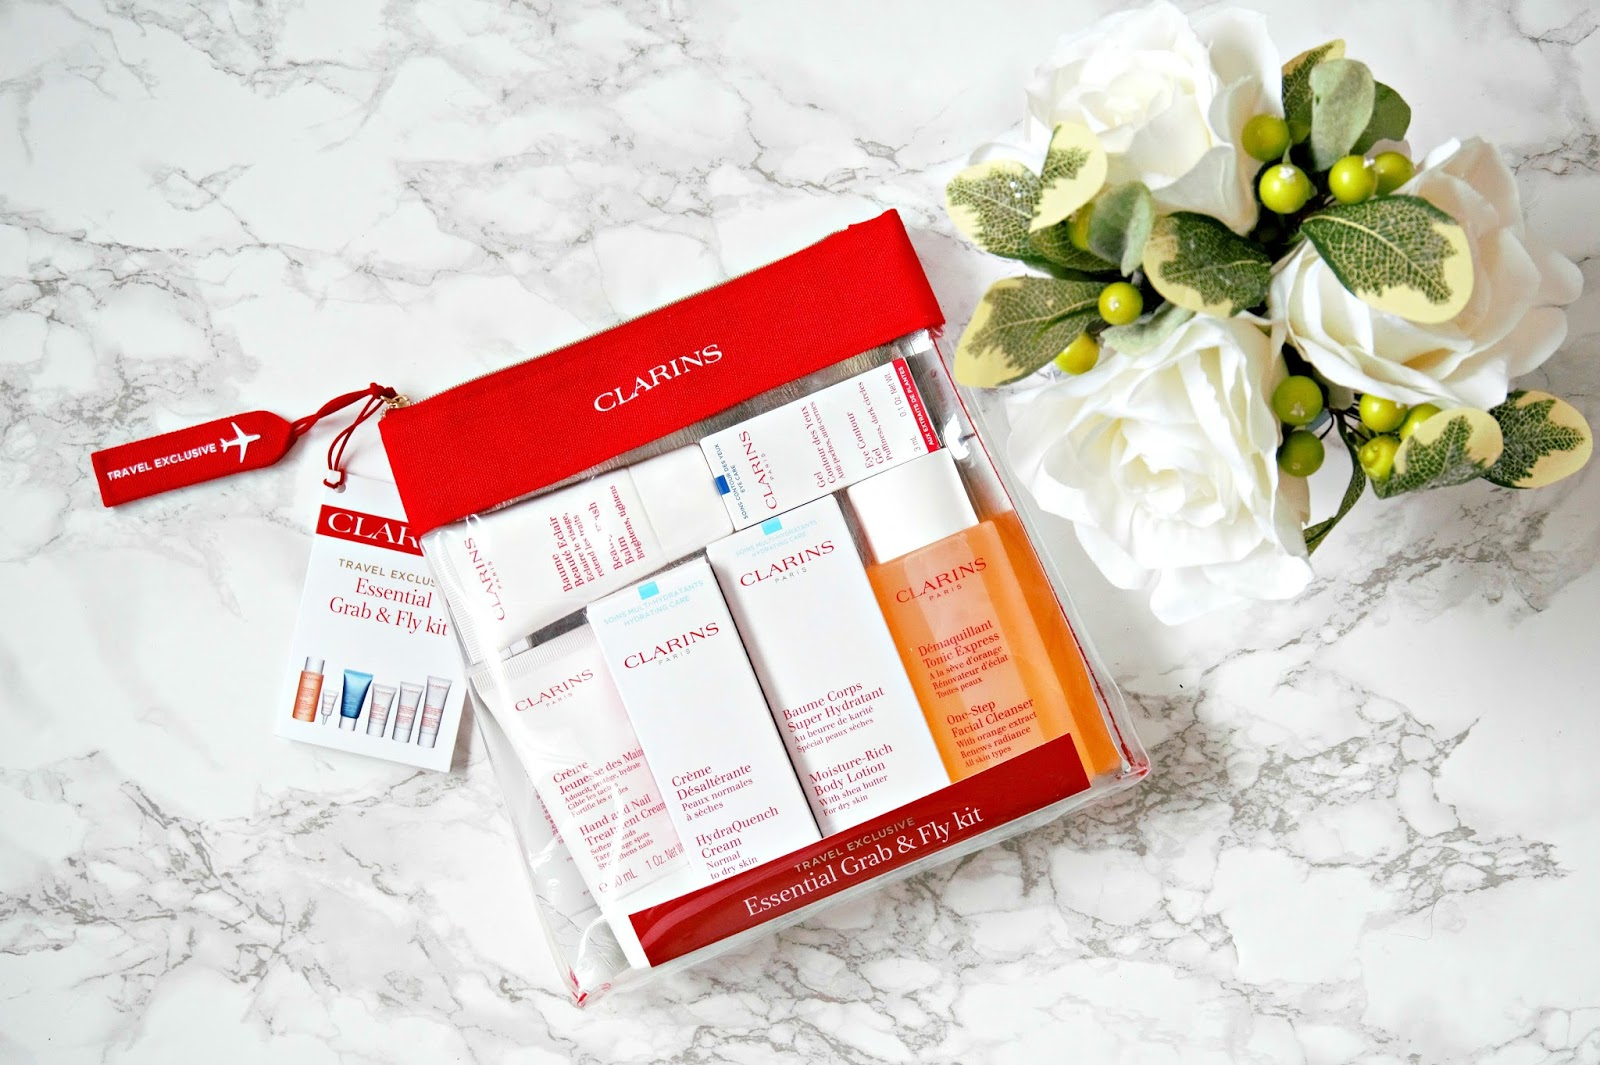 Clarins Essential Grab & Fly Kit